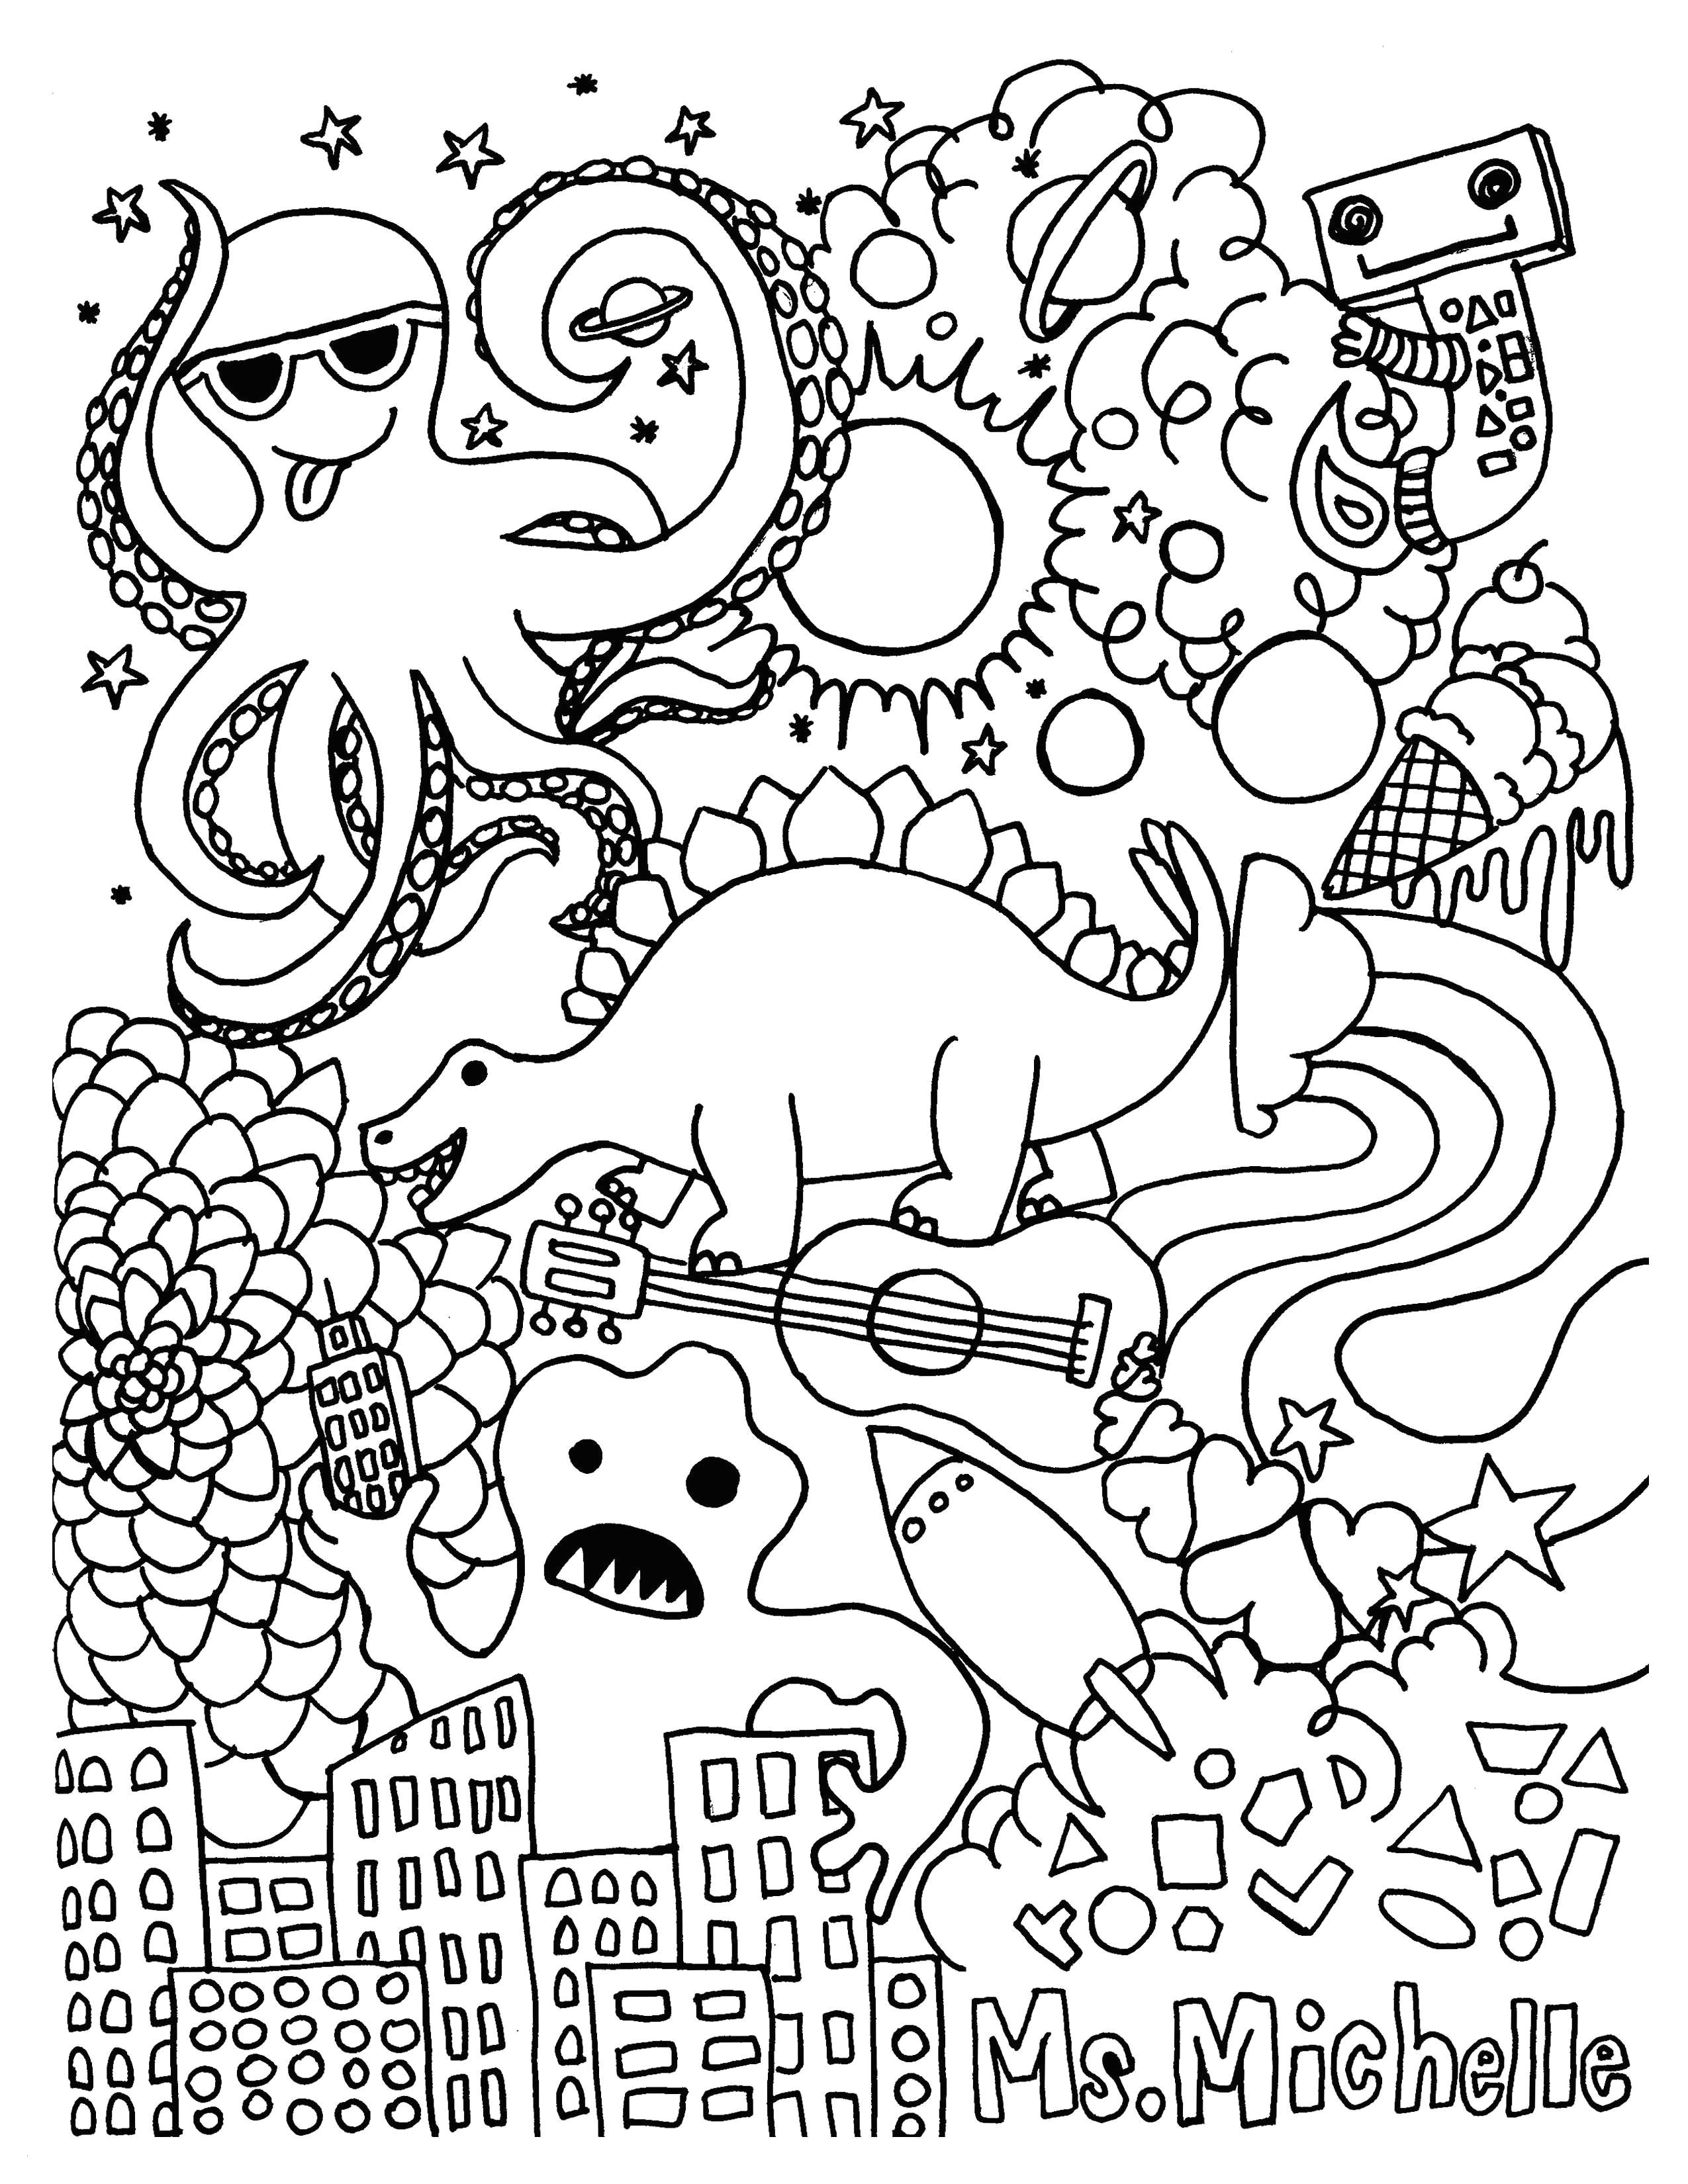 easy to draw pictures of jesus coloring jesus lovable coloring pages about jesus of easy to